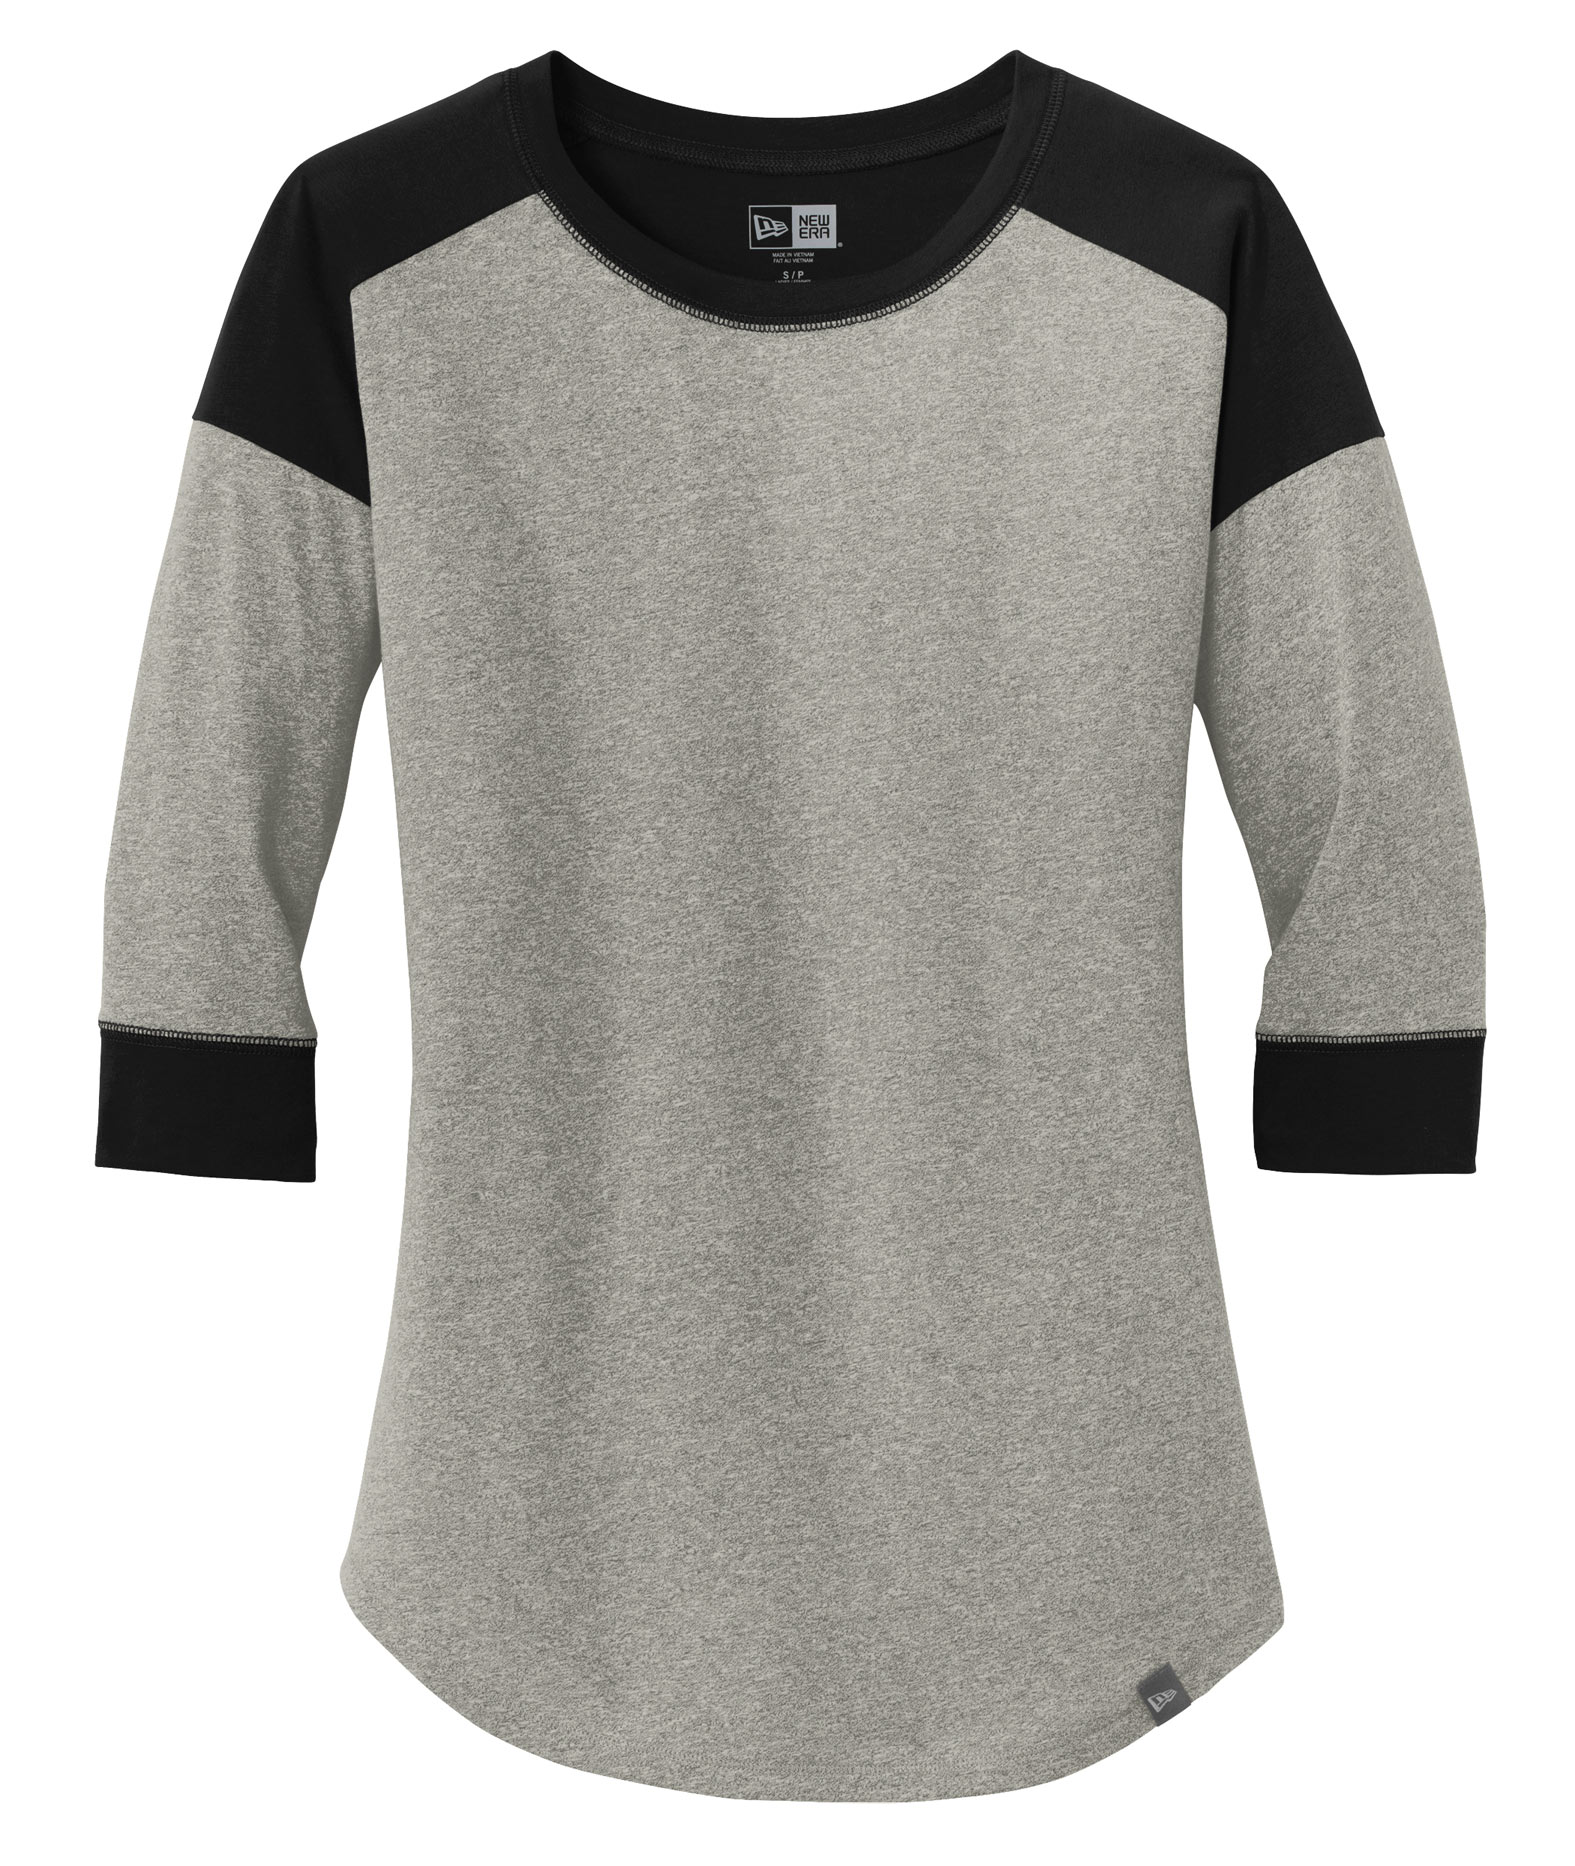 New Era® Ladies Heritage Blend 3/4 Sleeve Baseball Raglan Tee